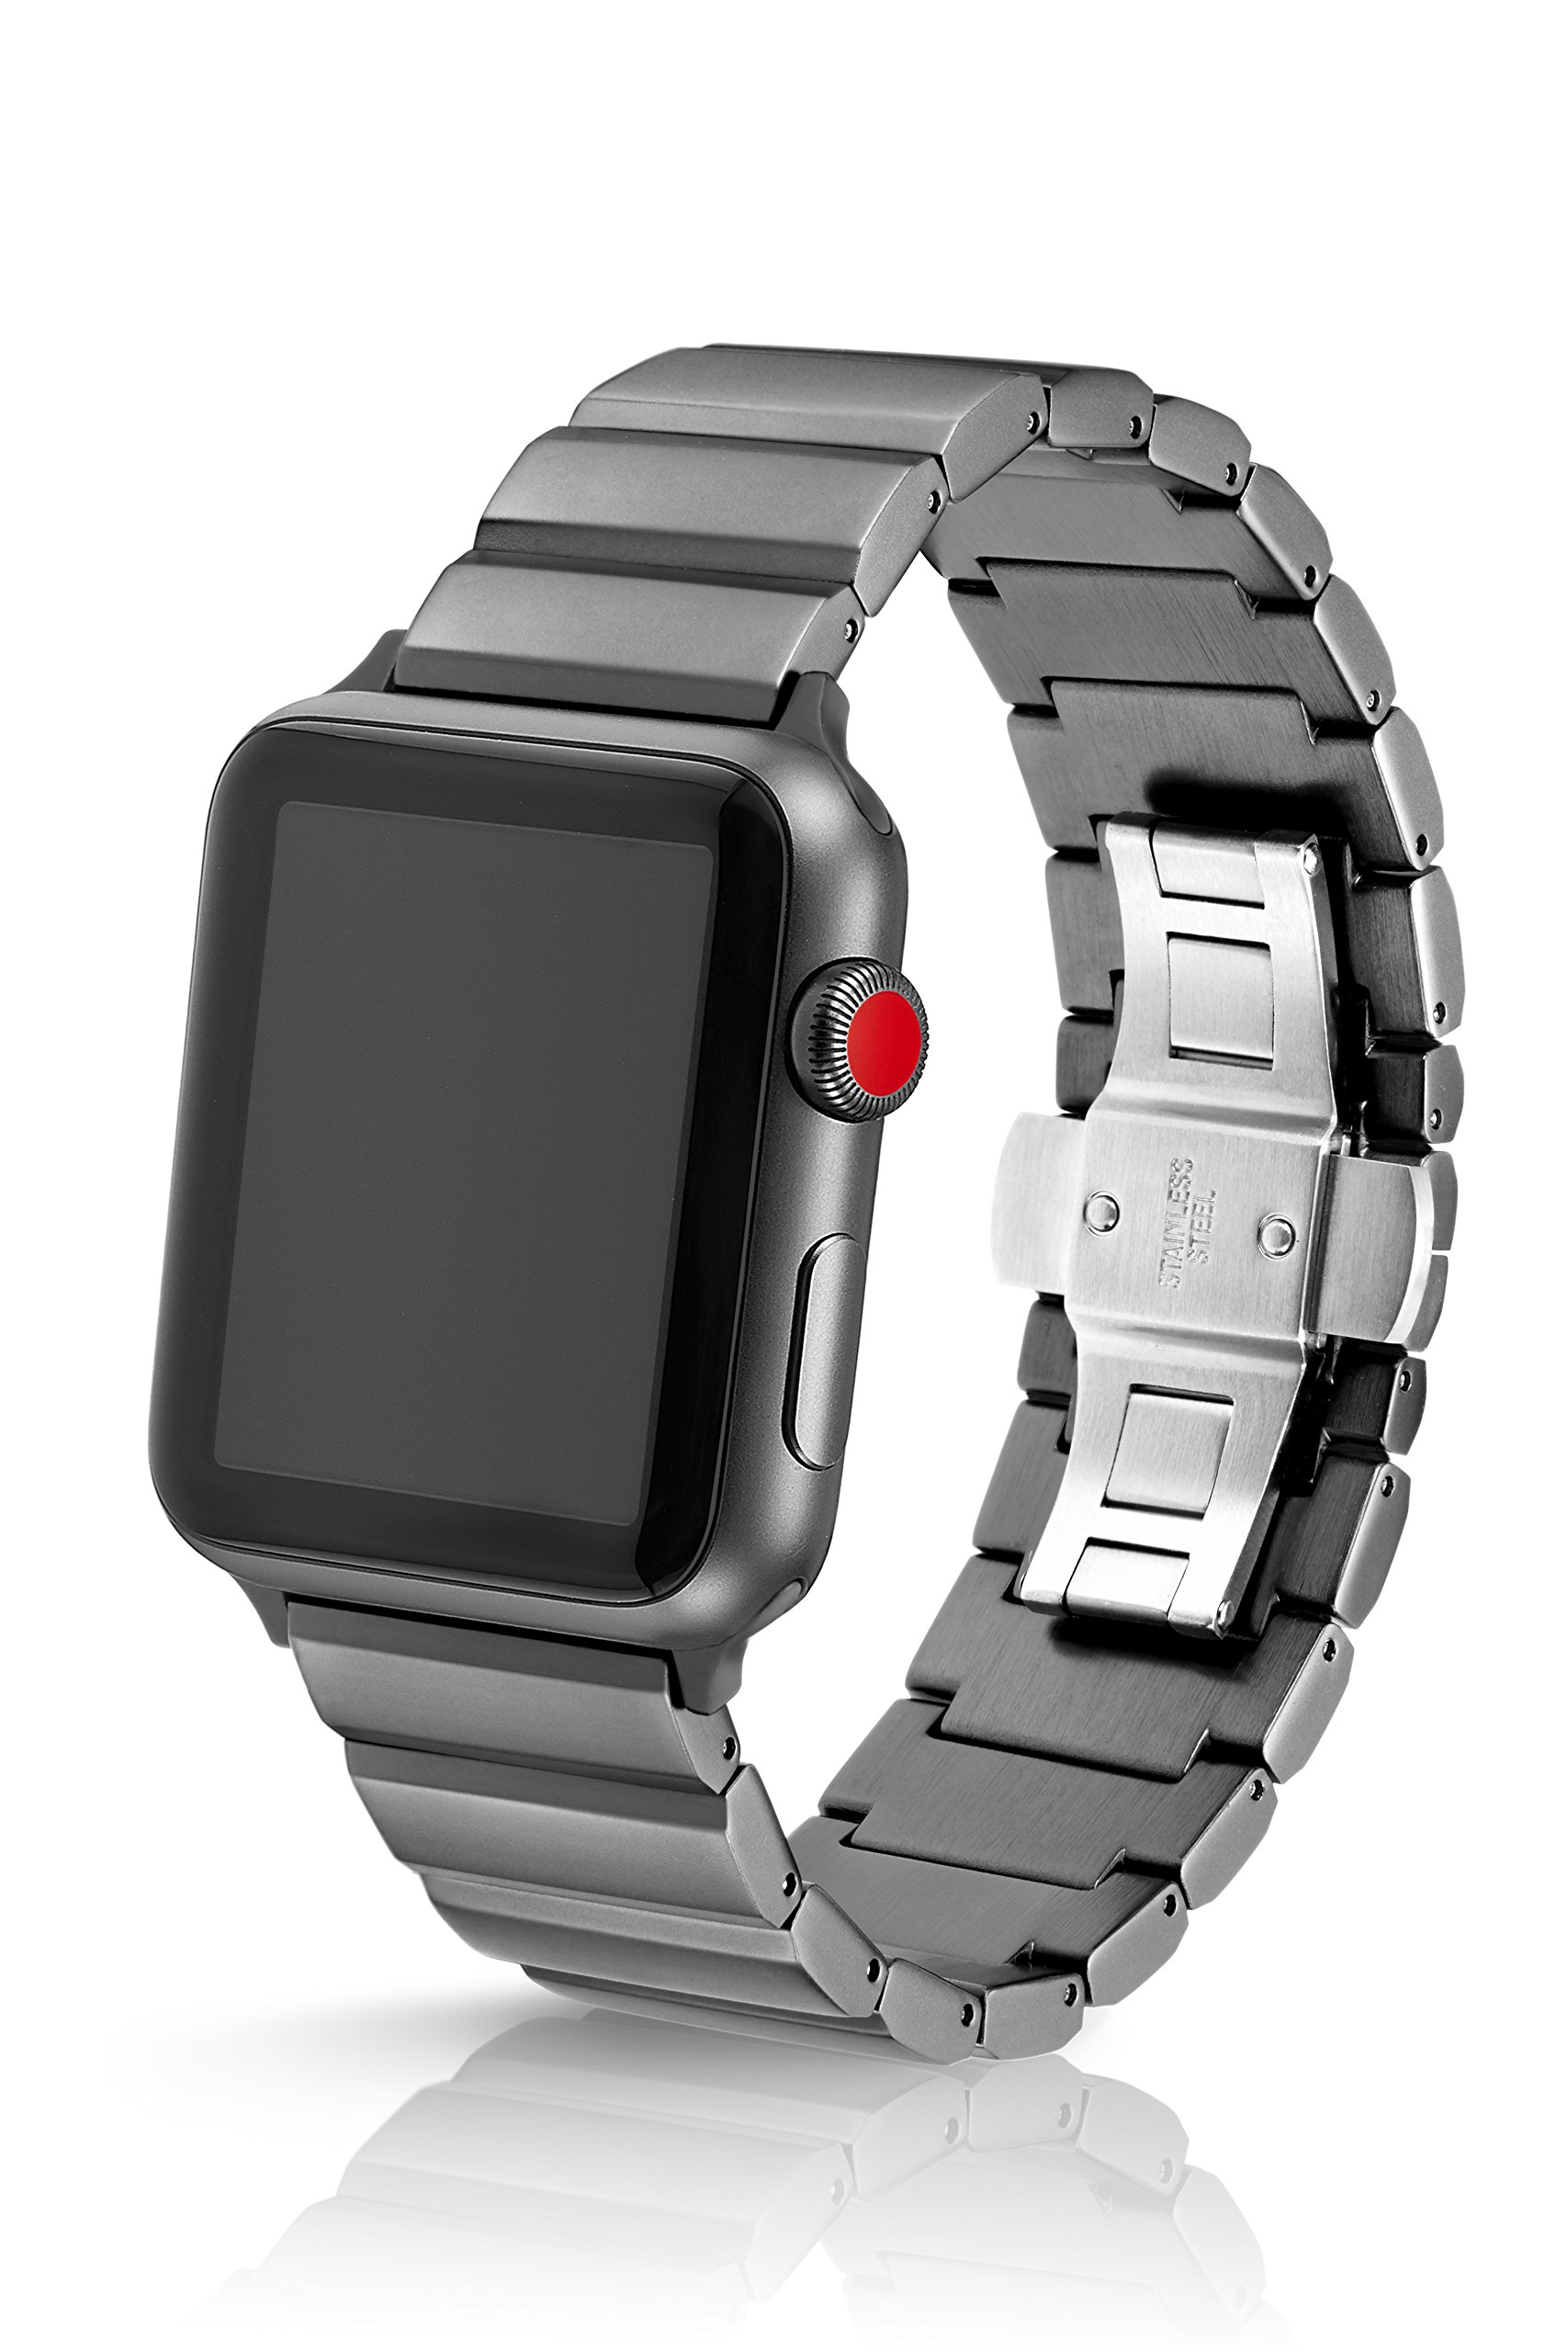 42/44mm JUUK Cosmic Grey Ligero LT Premium watch band made for the Apple Watch, using aircraft grade, hard anodized 6000 series aluminum with a solid stainless steel butterfly deployant buckle (matte)